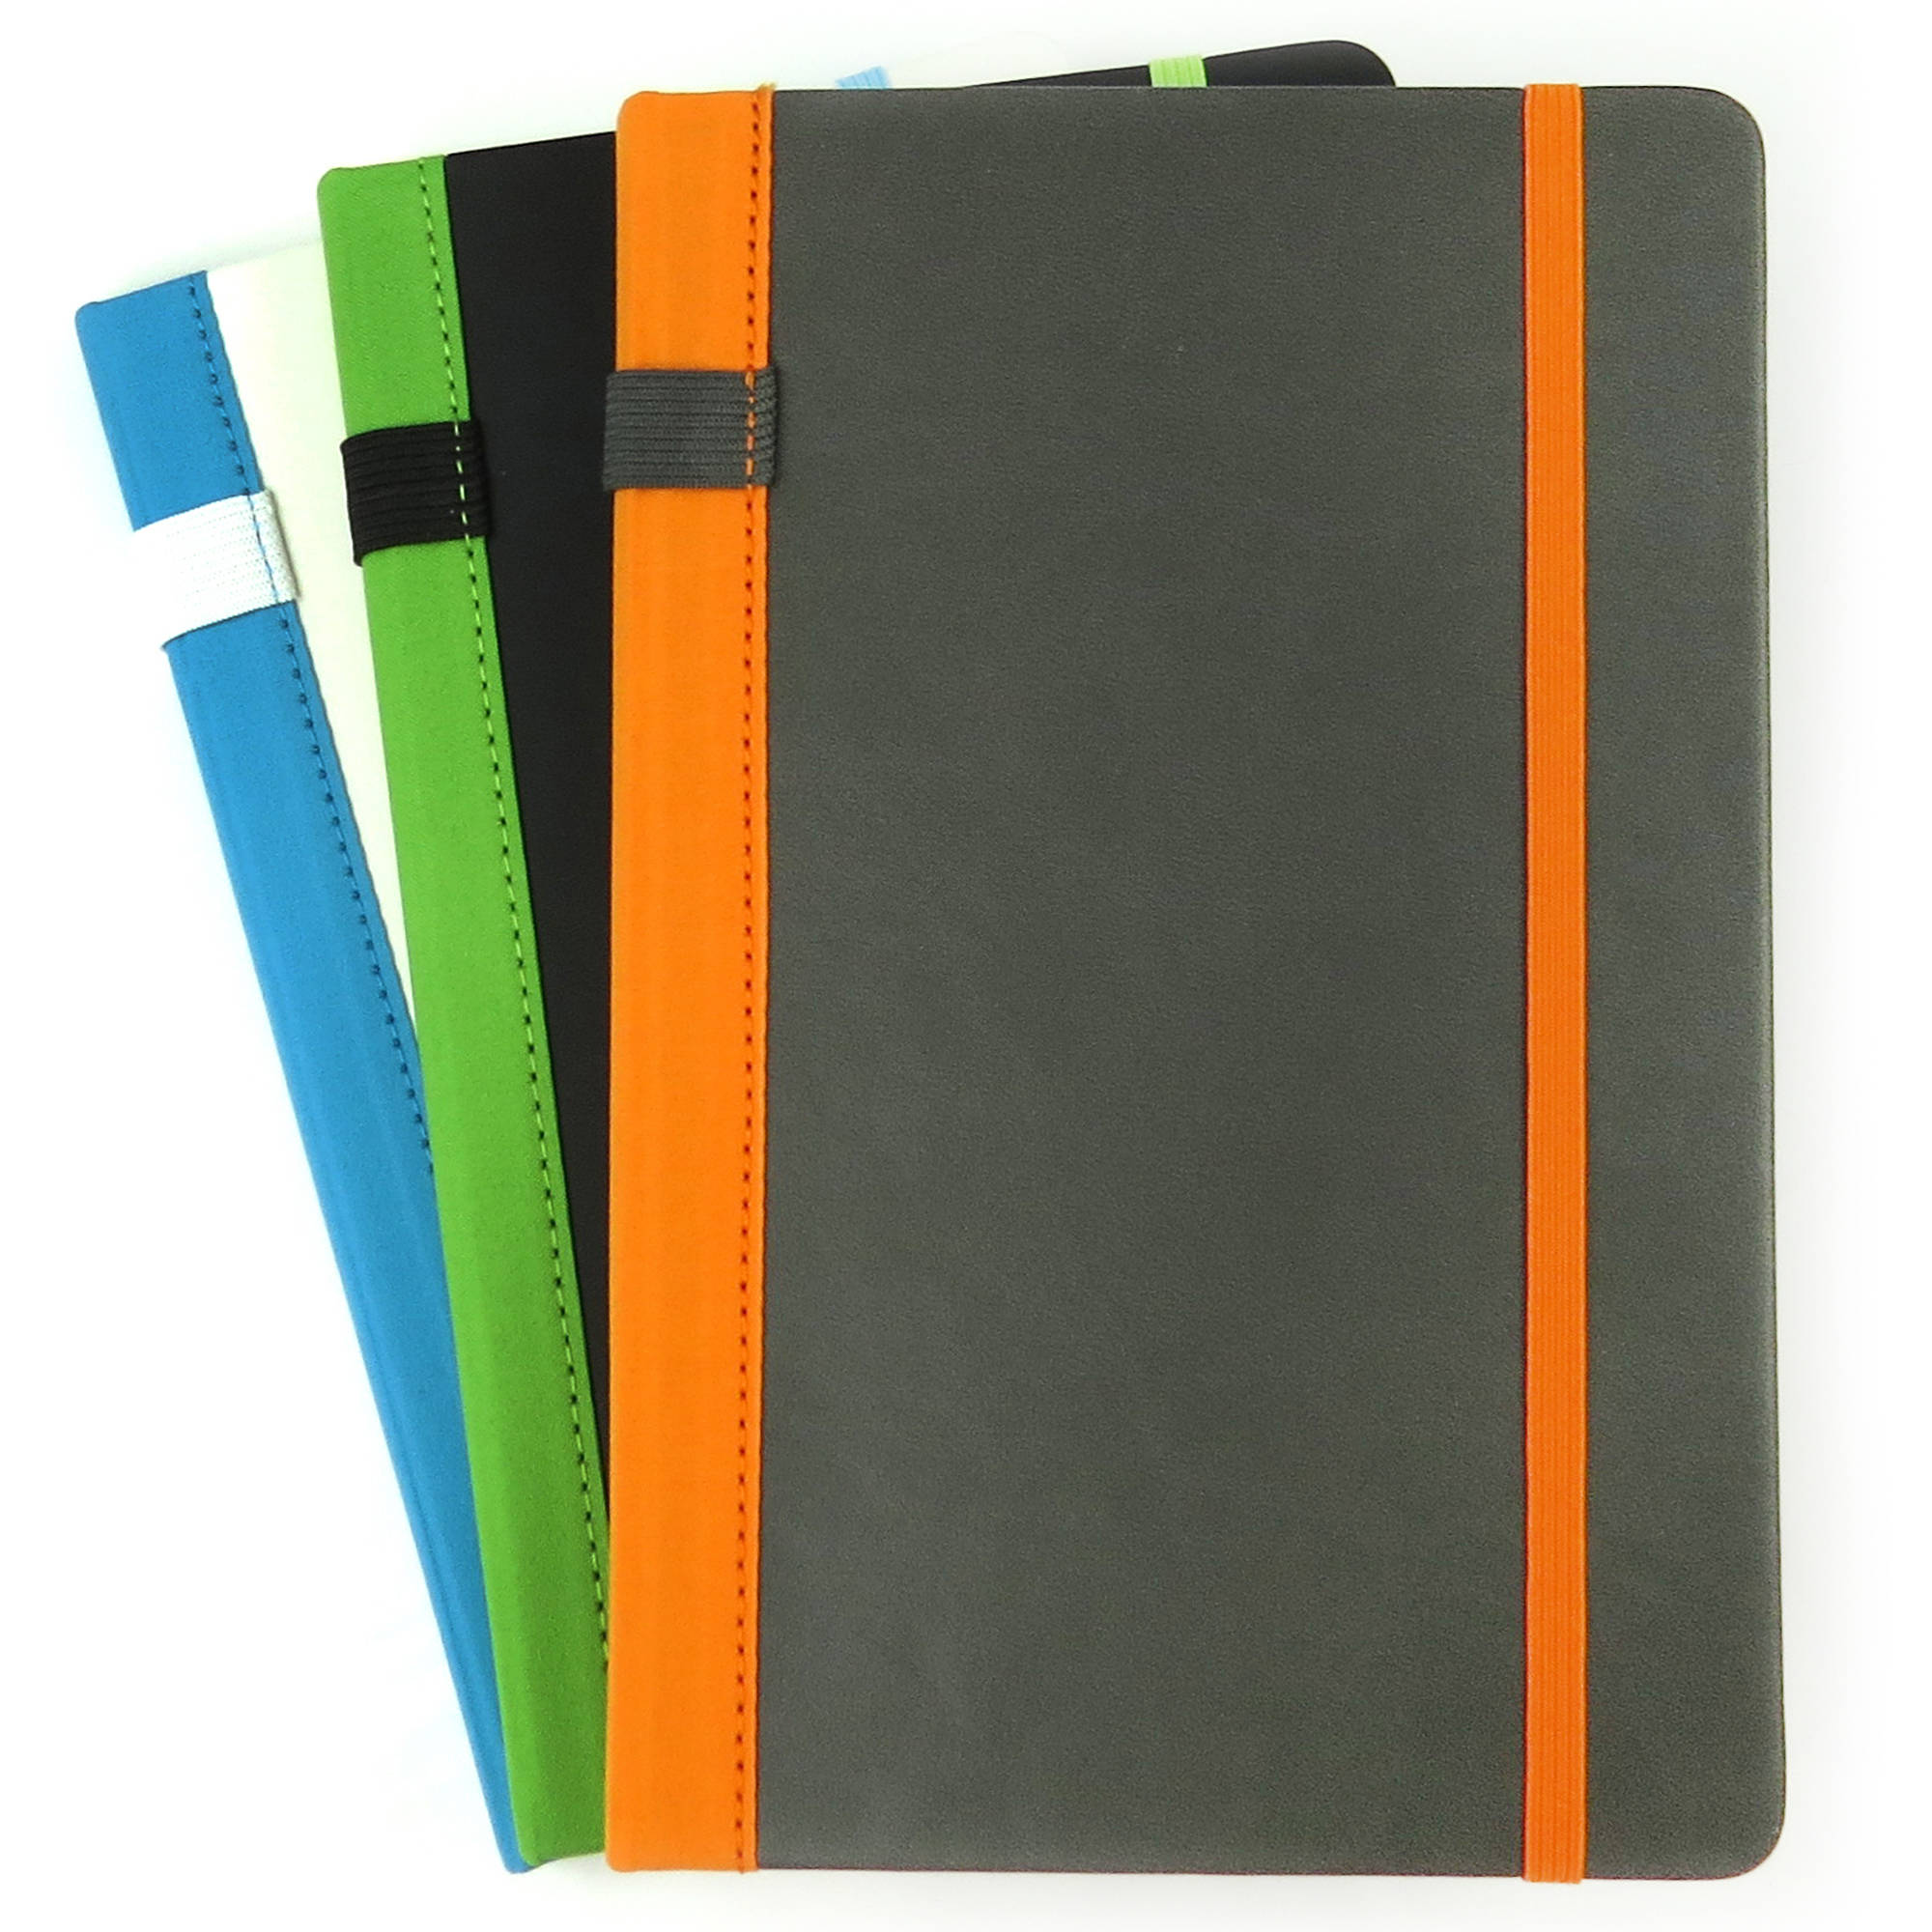 Paperworks Peninsula Fashion Notebook, 3-Pack